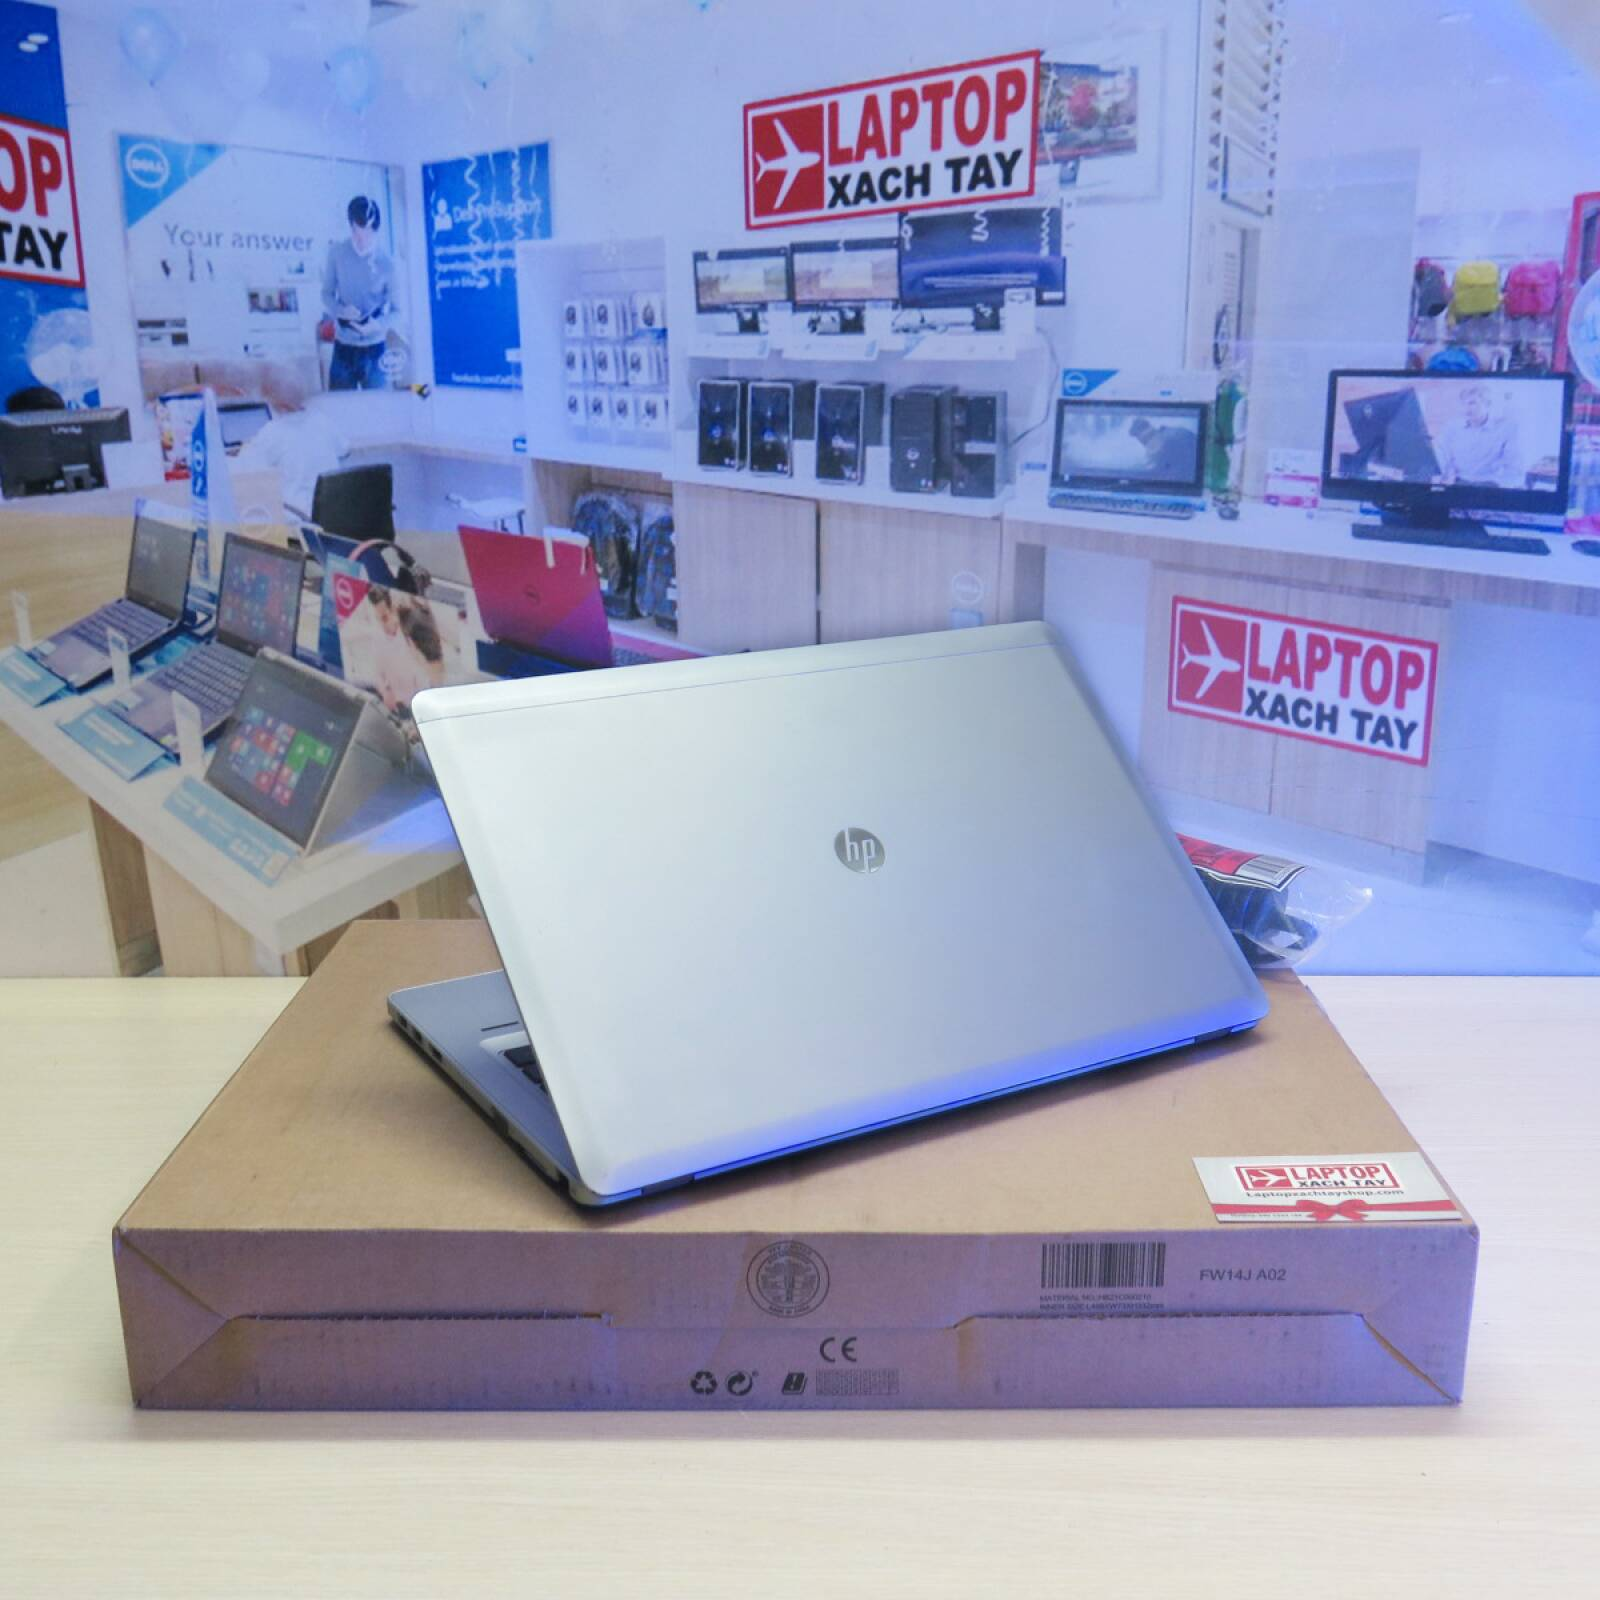 Laptop HP Elitebook 9480M tại Laptopxachtayshop.com